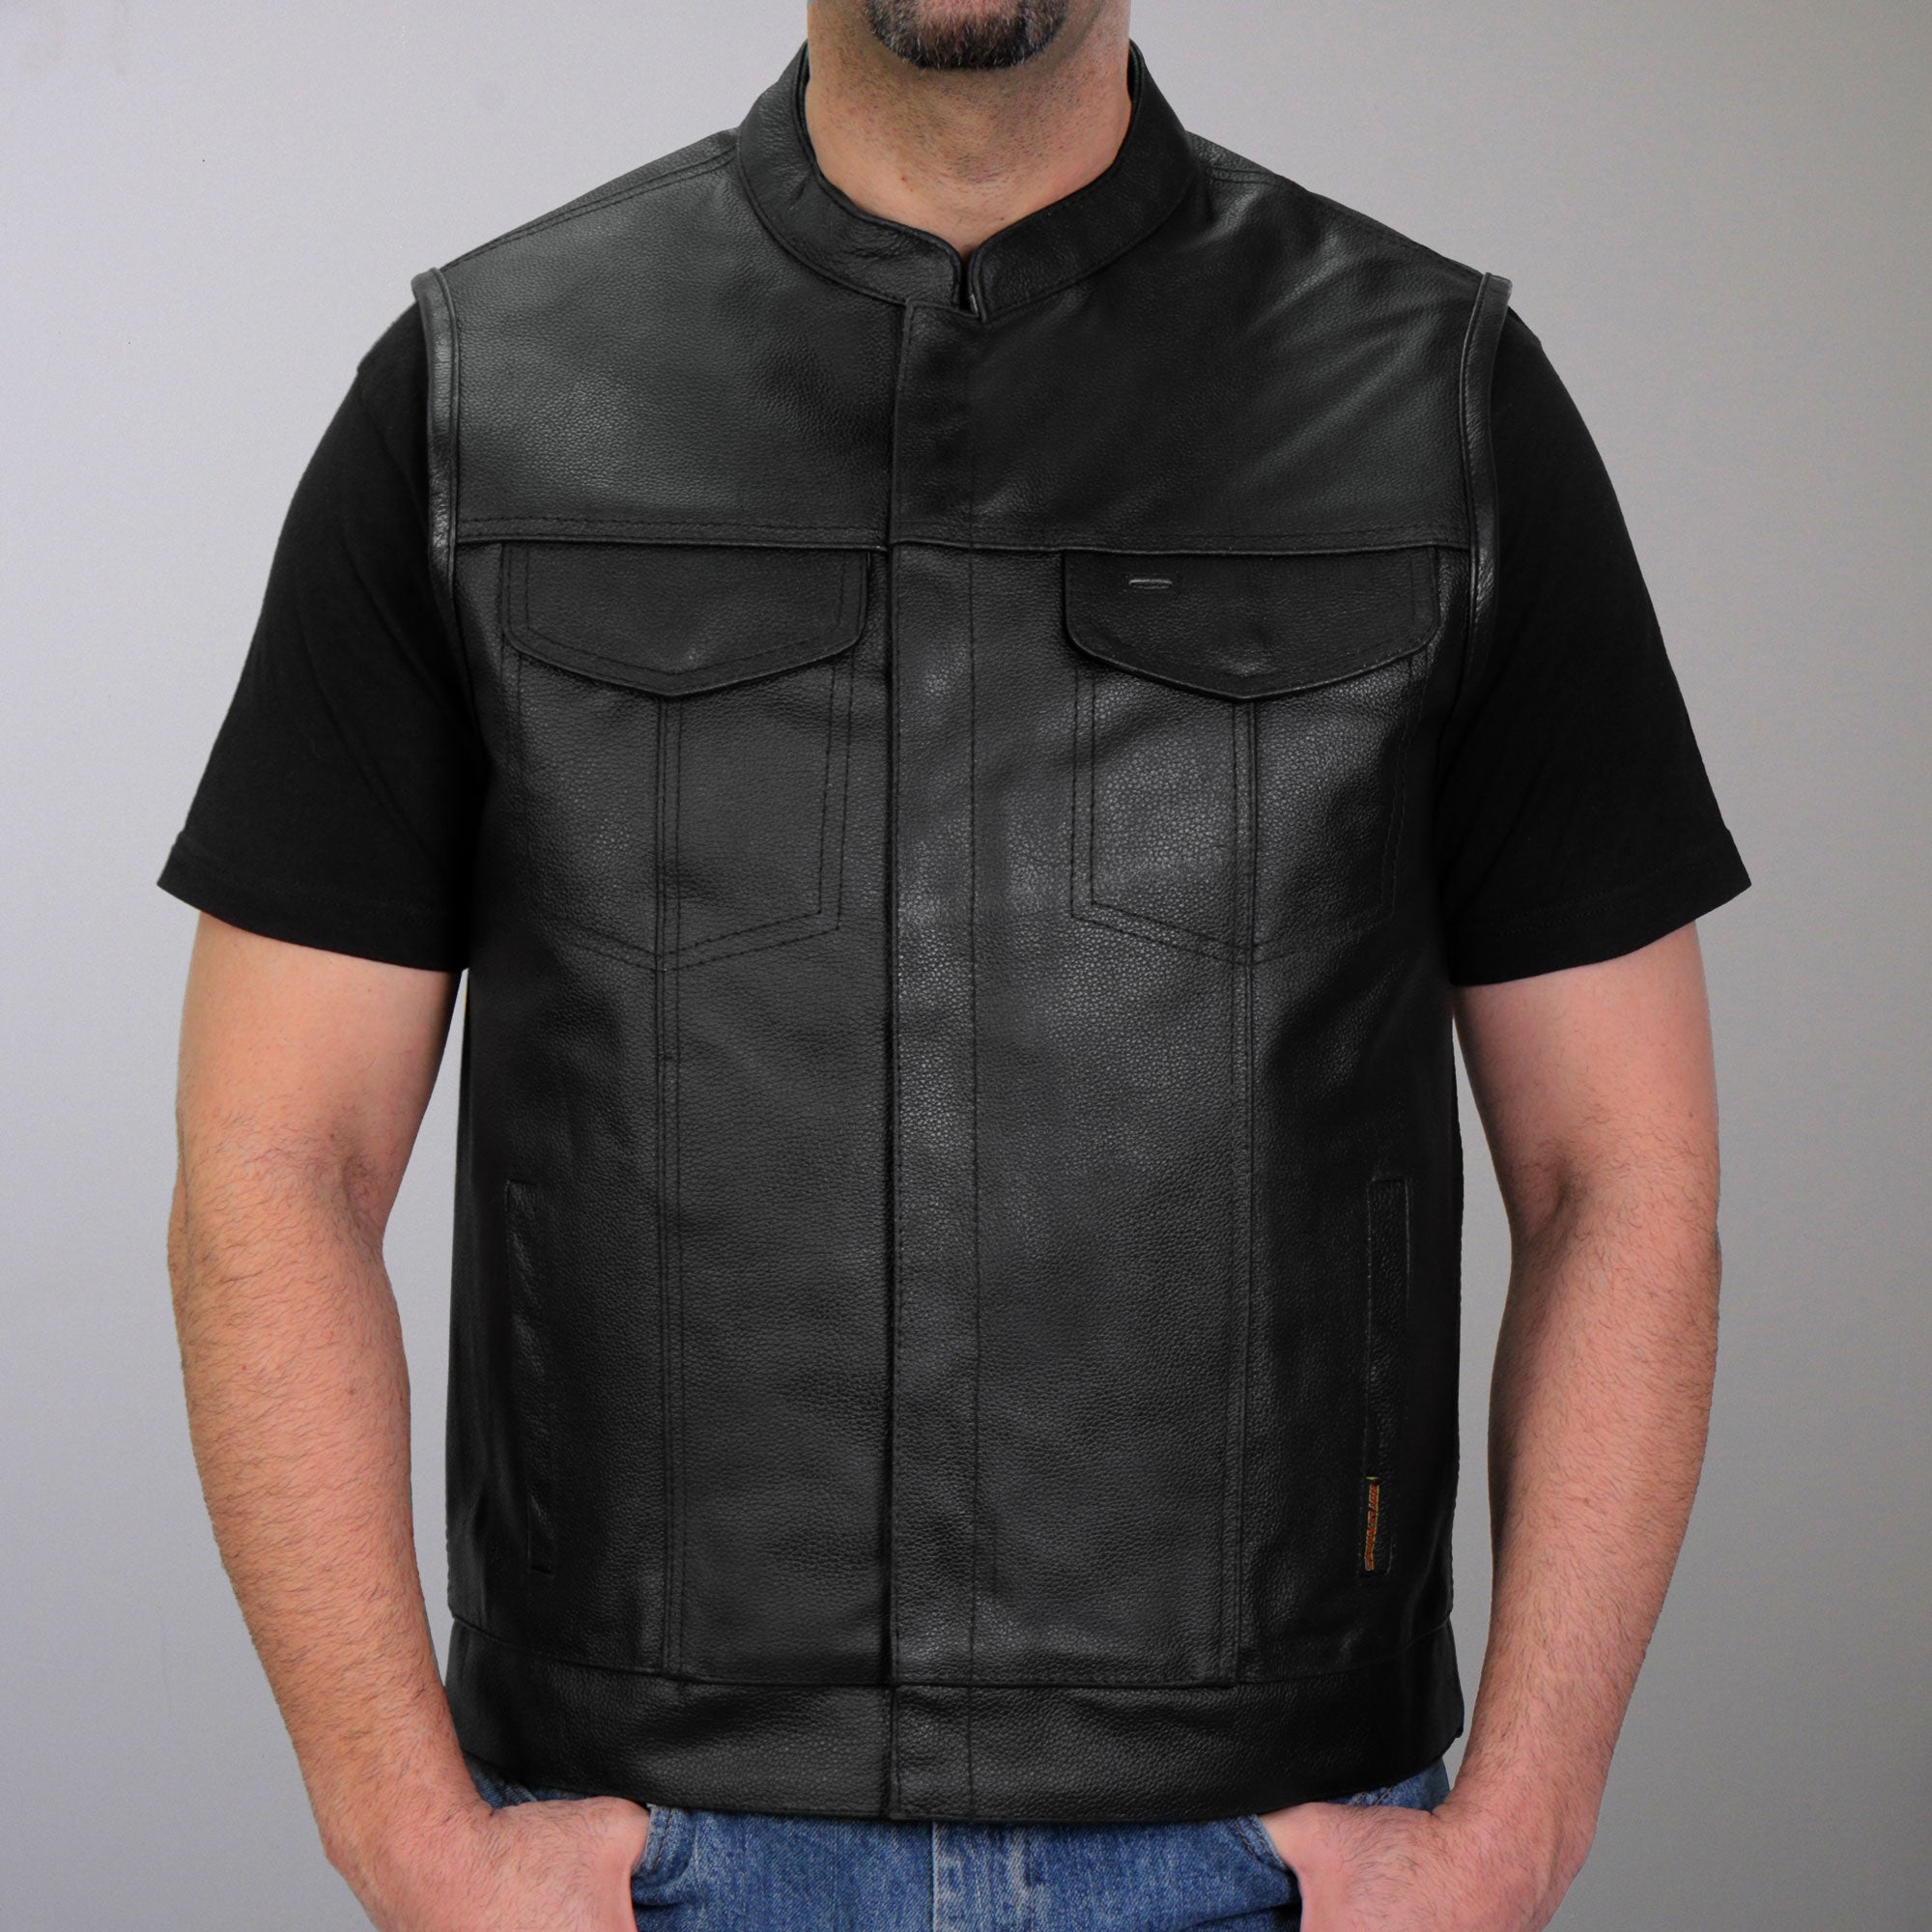 Hot Leathers Zip and Snap Club Style Vest